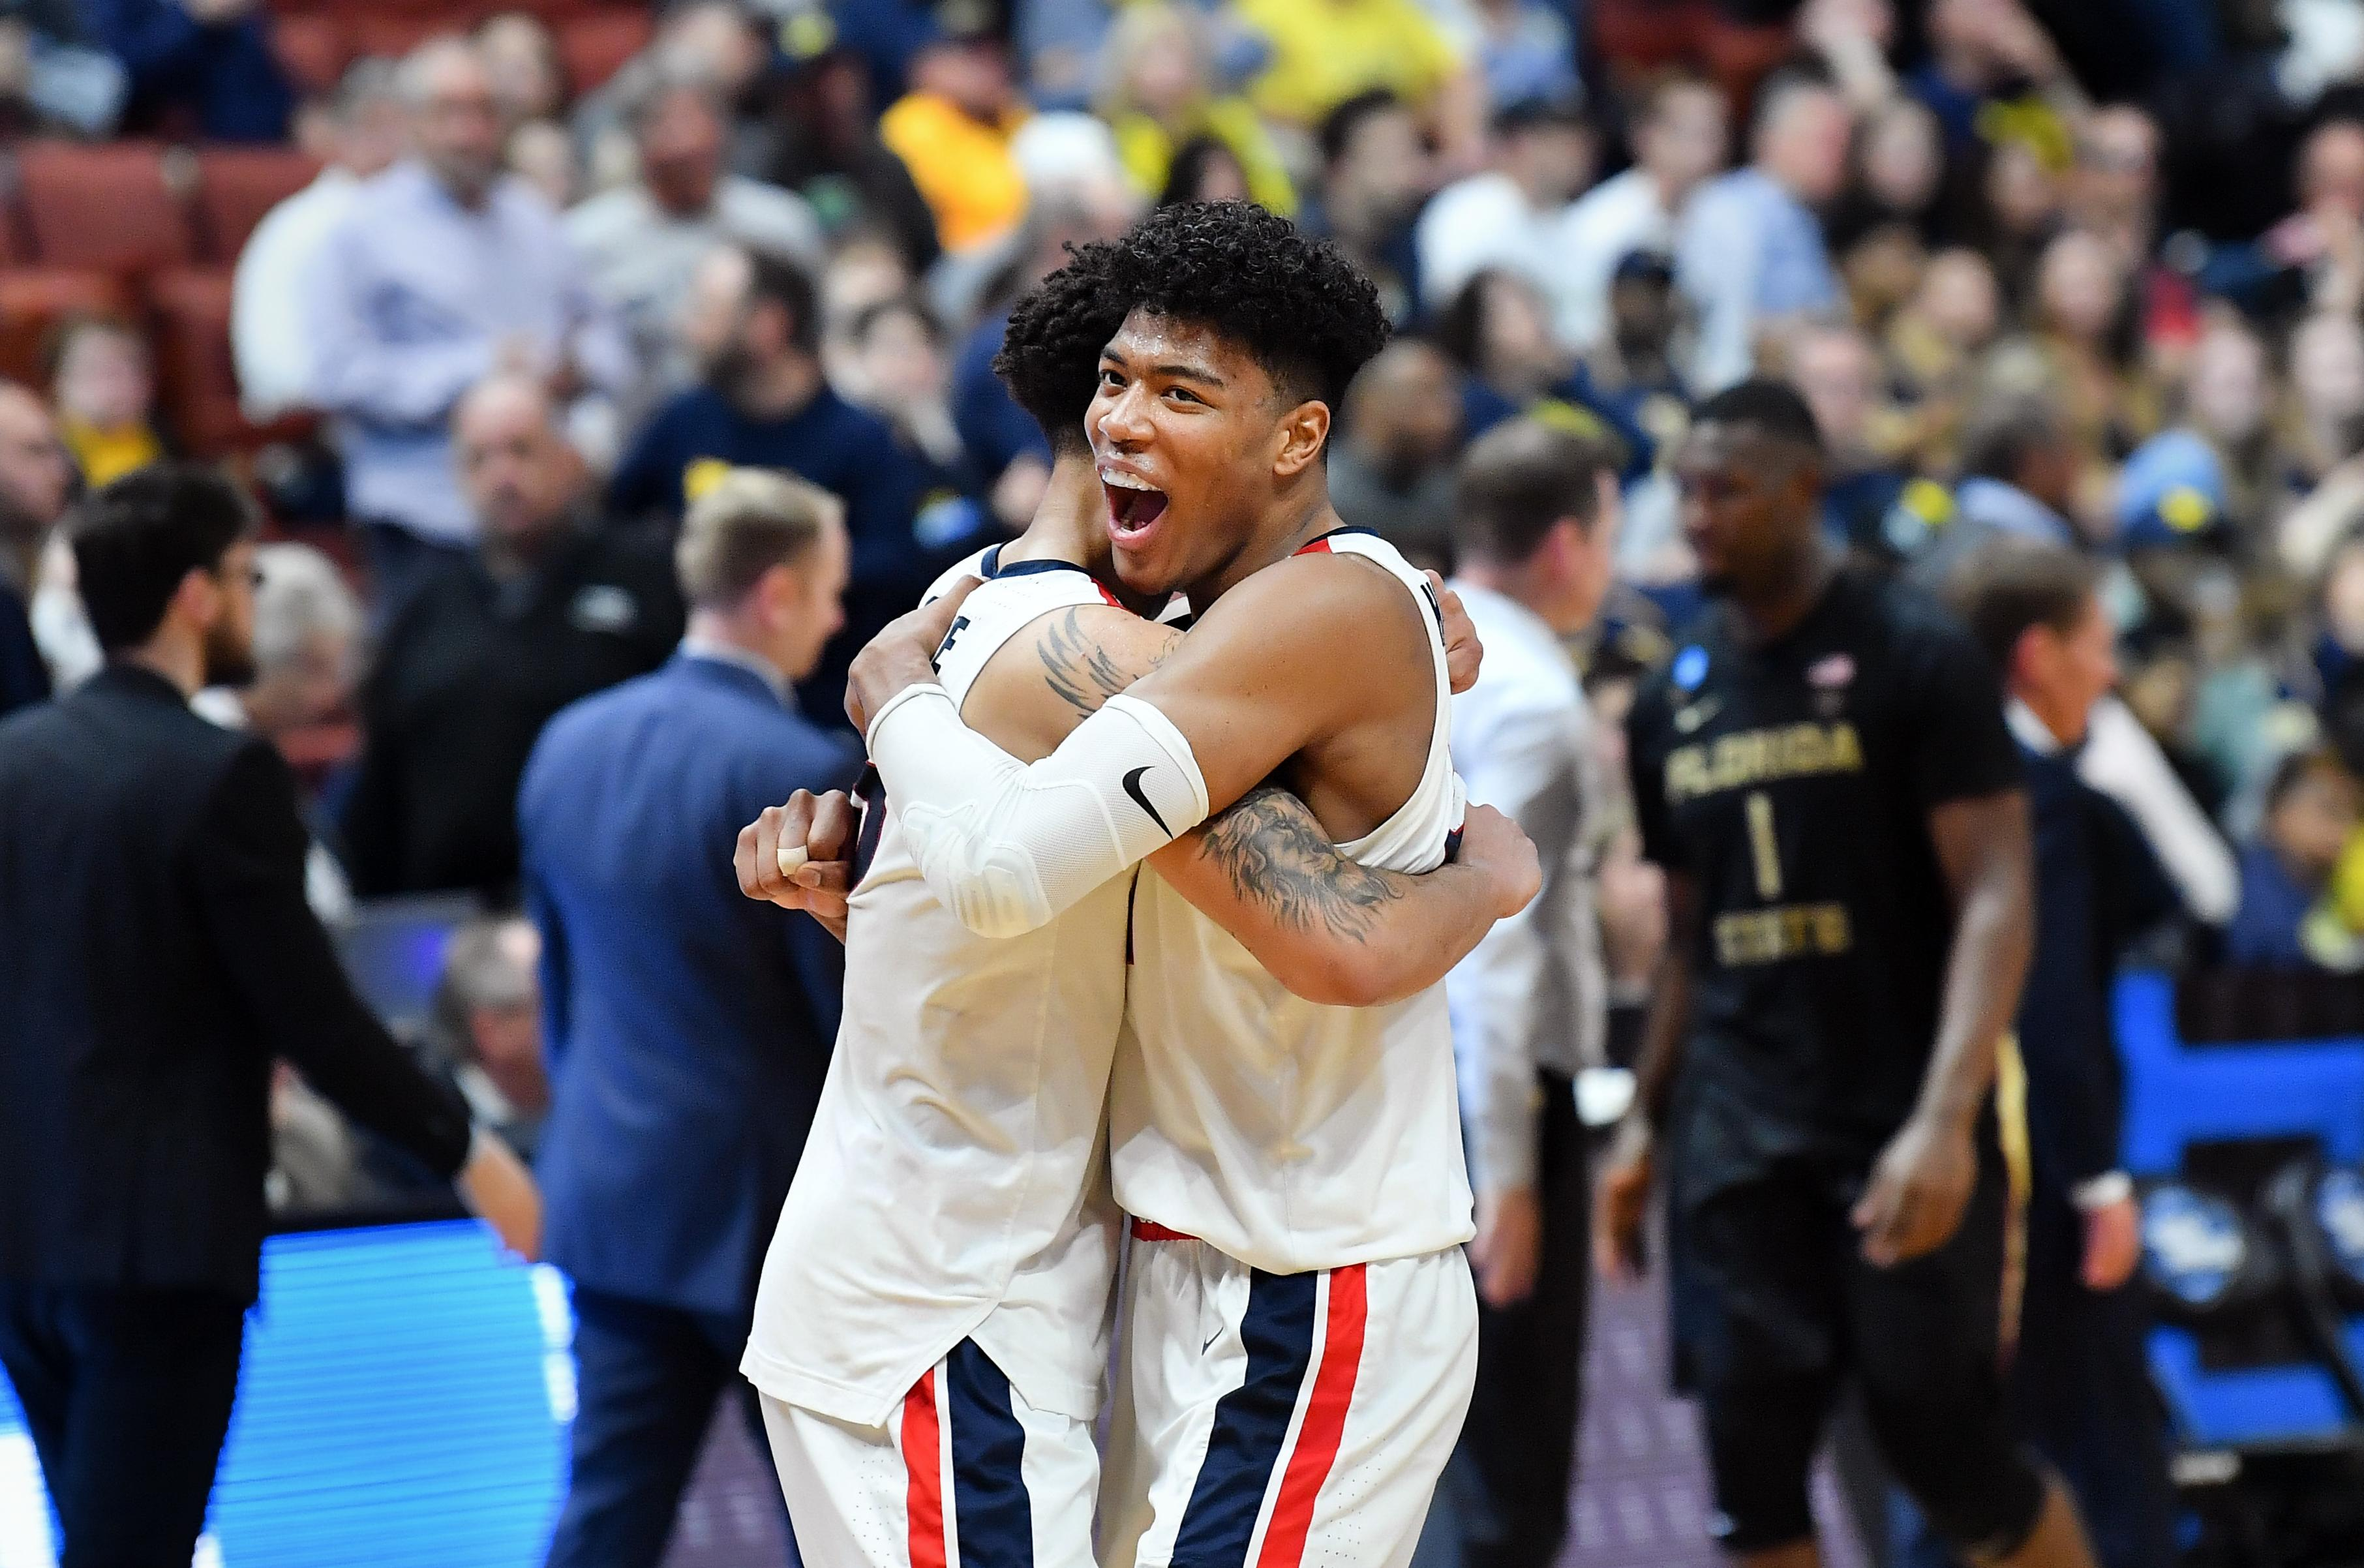 finest selection 690c4 e0825 Analysis  Gonzaga turns tables on Florida State, advances to Elite Eight  with 72-58 victory